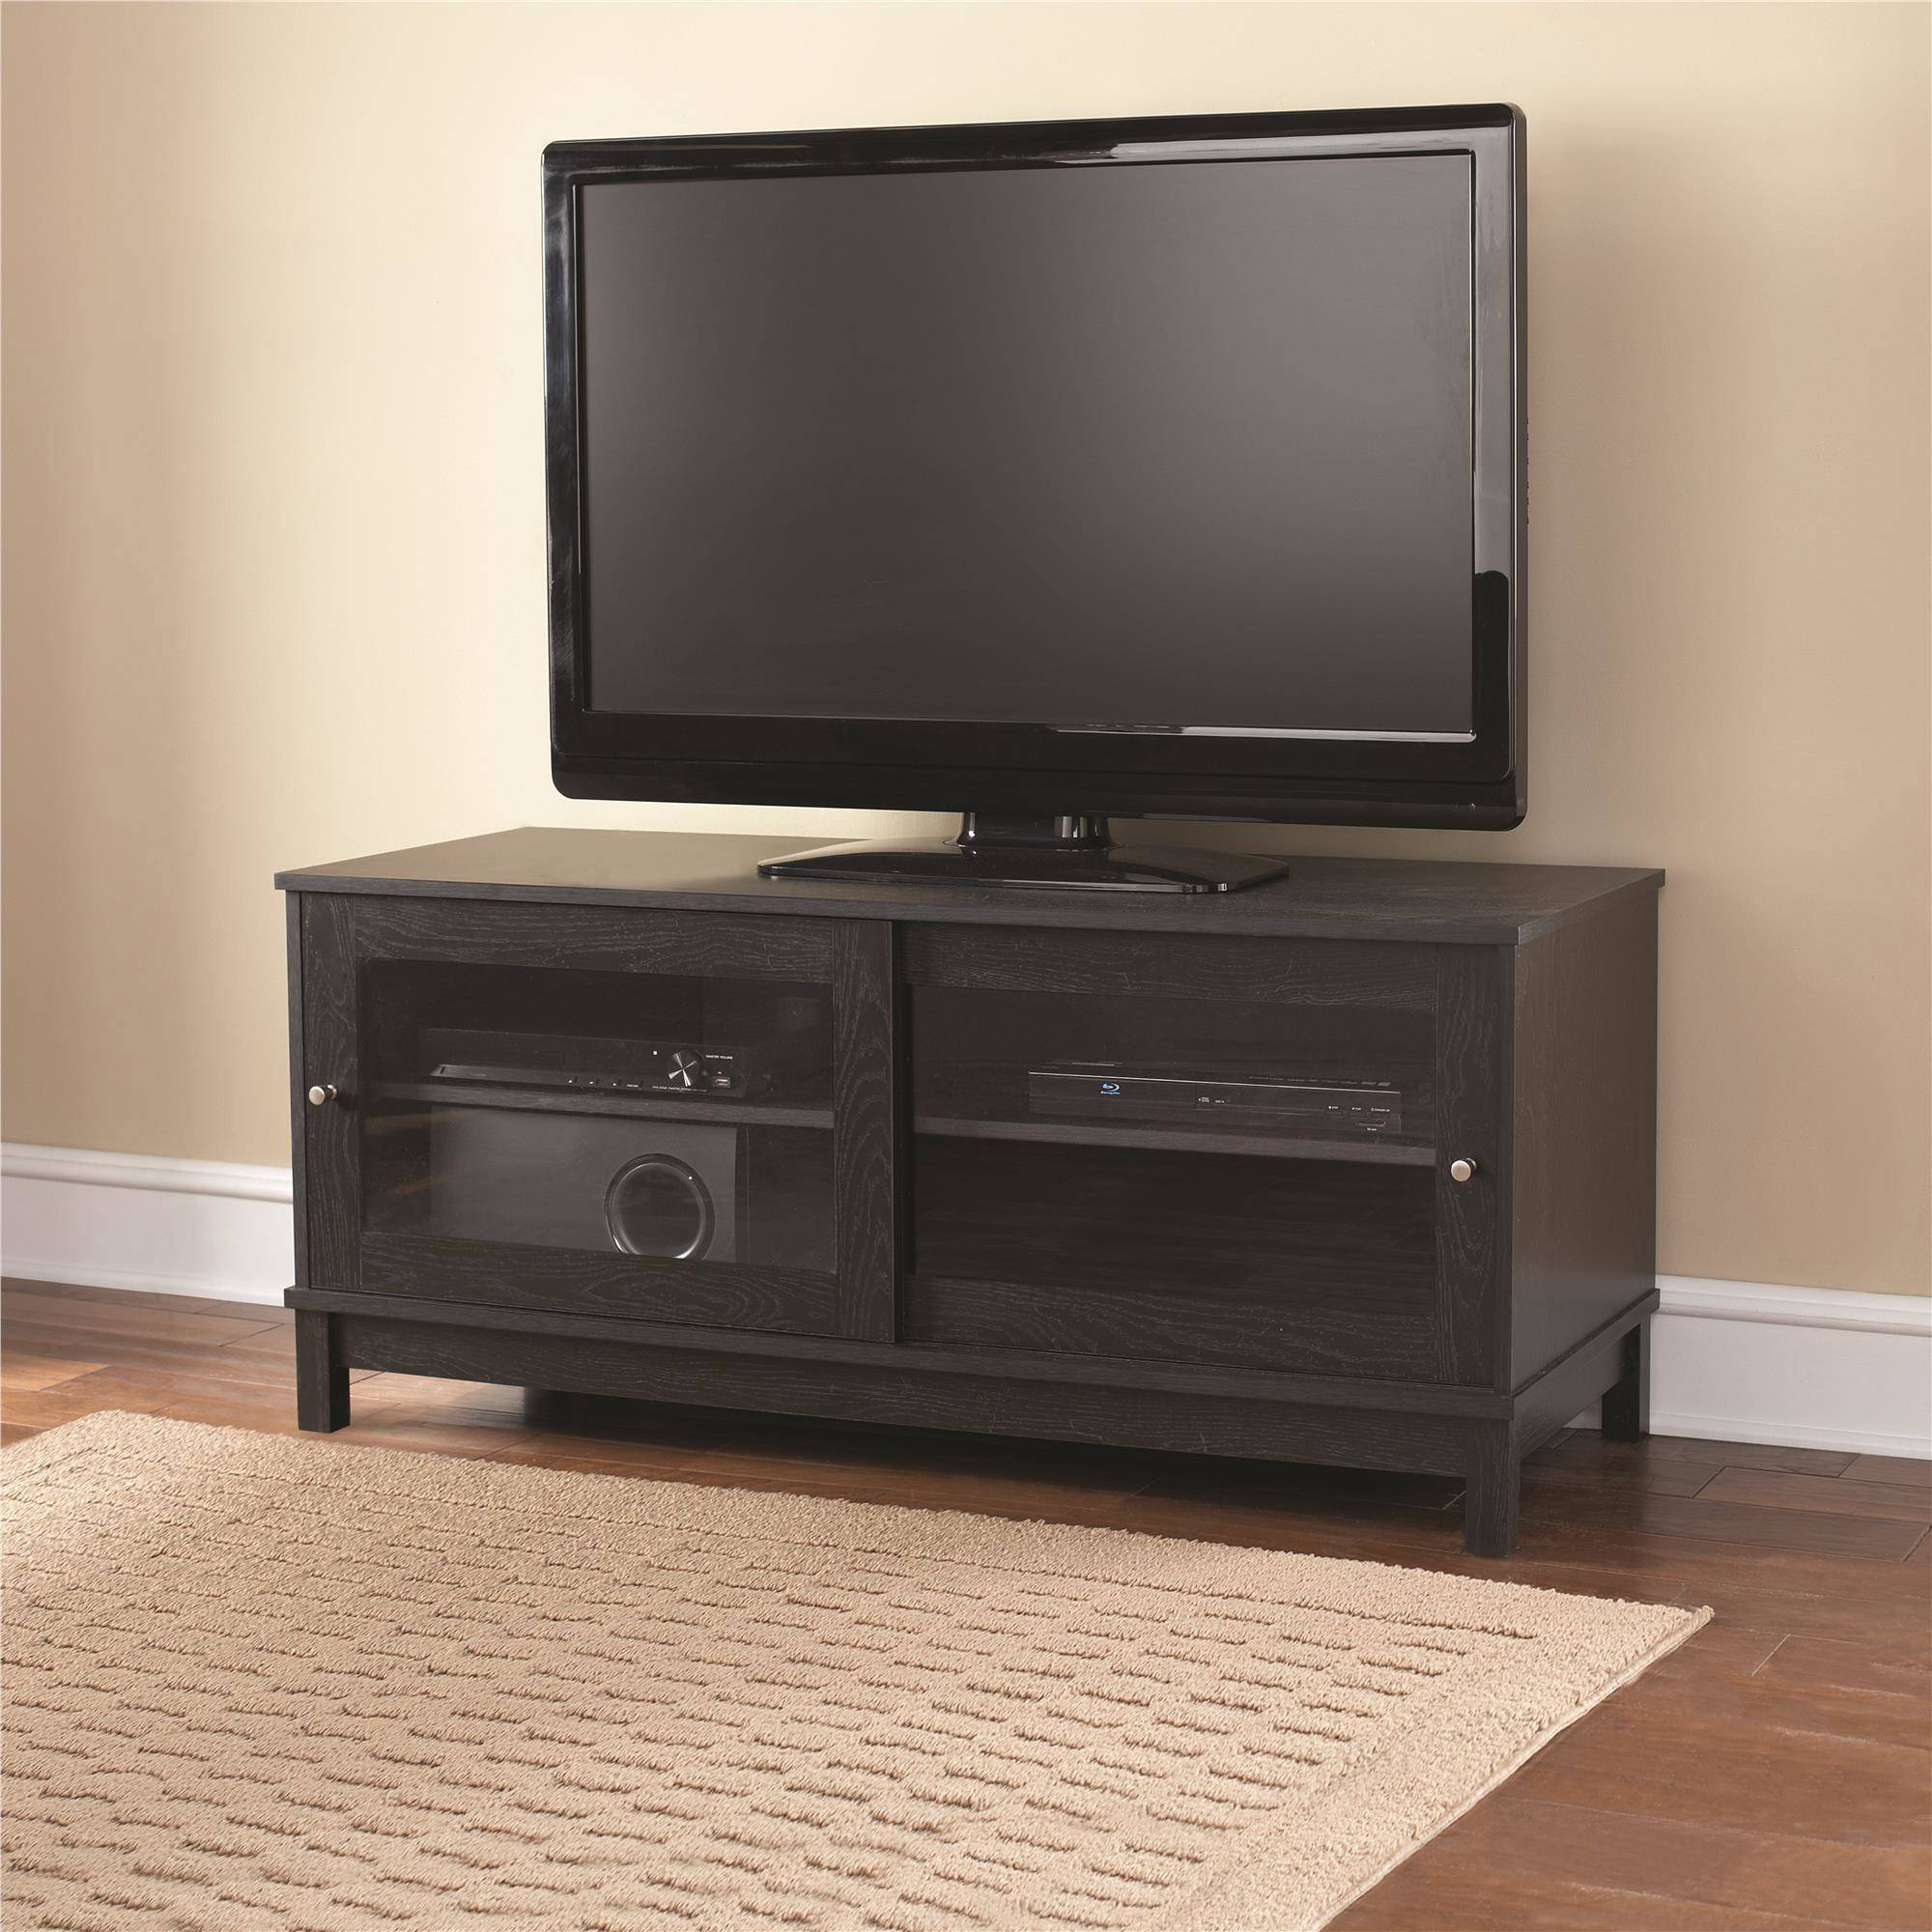 mainstays 55 tv stand with sliding glass doors multiple colors walmart com